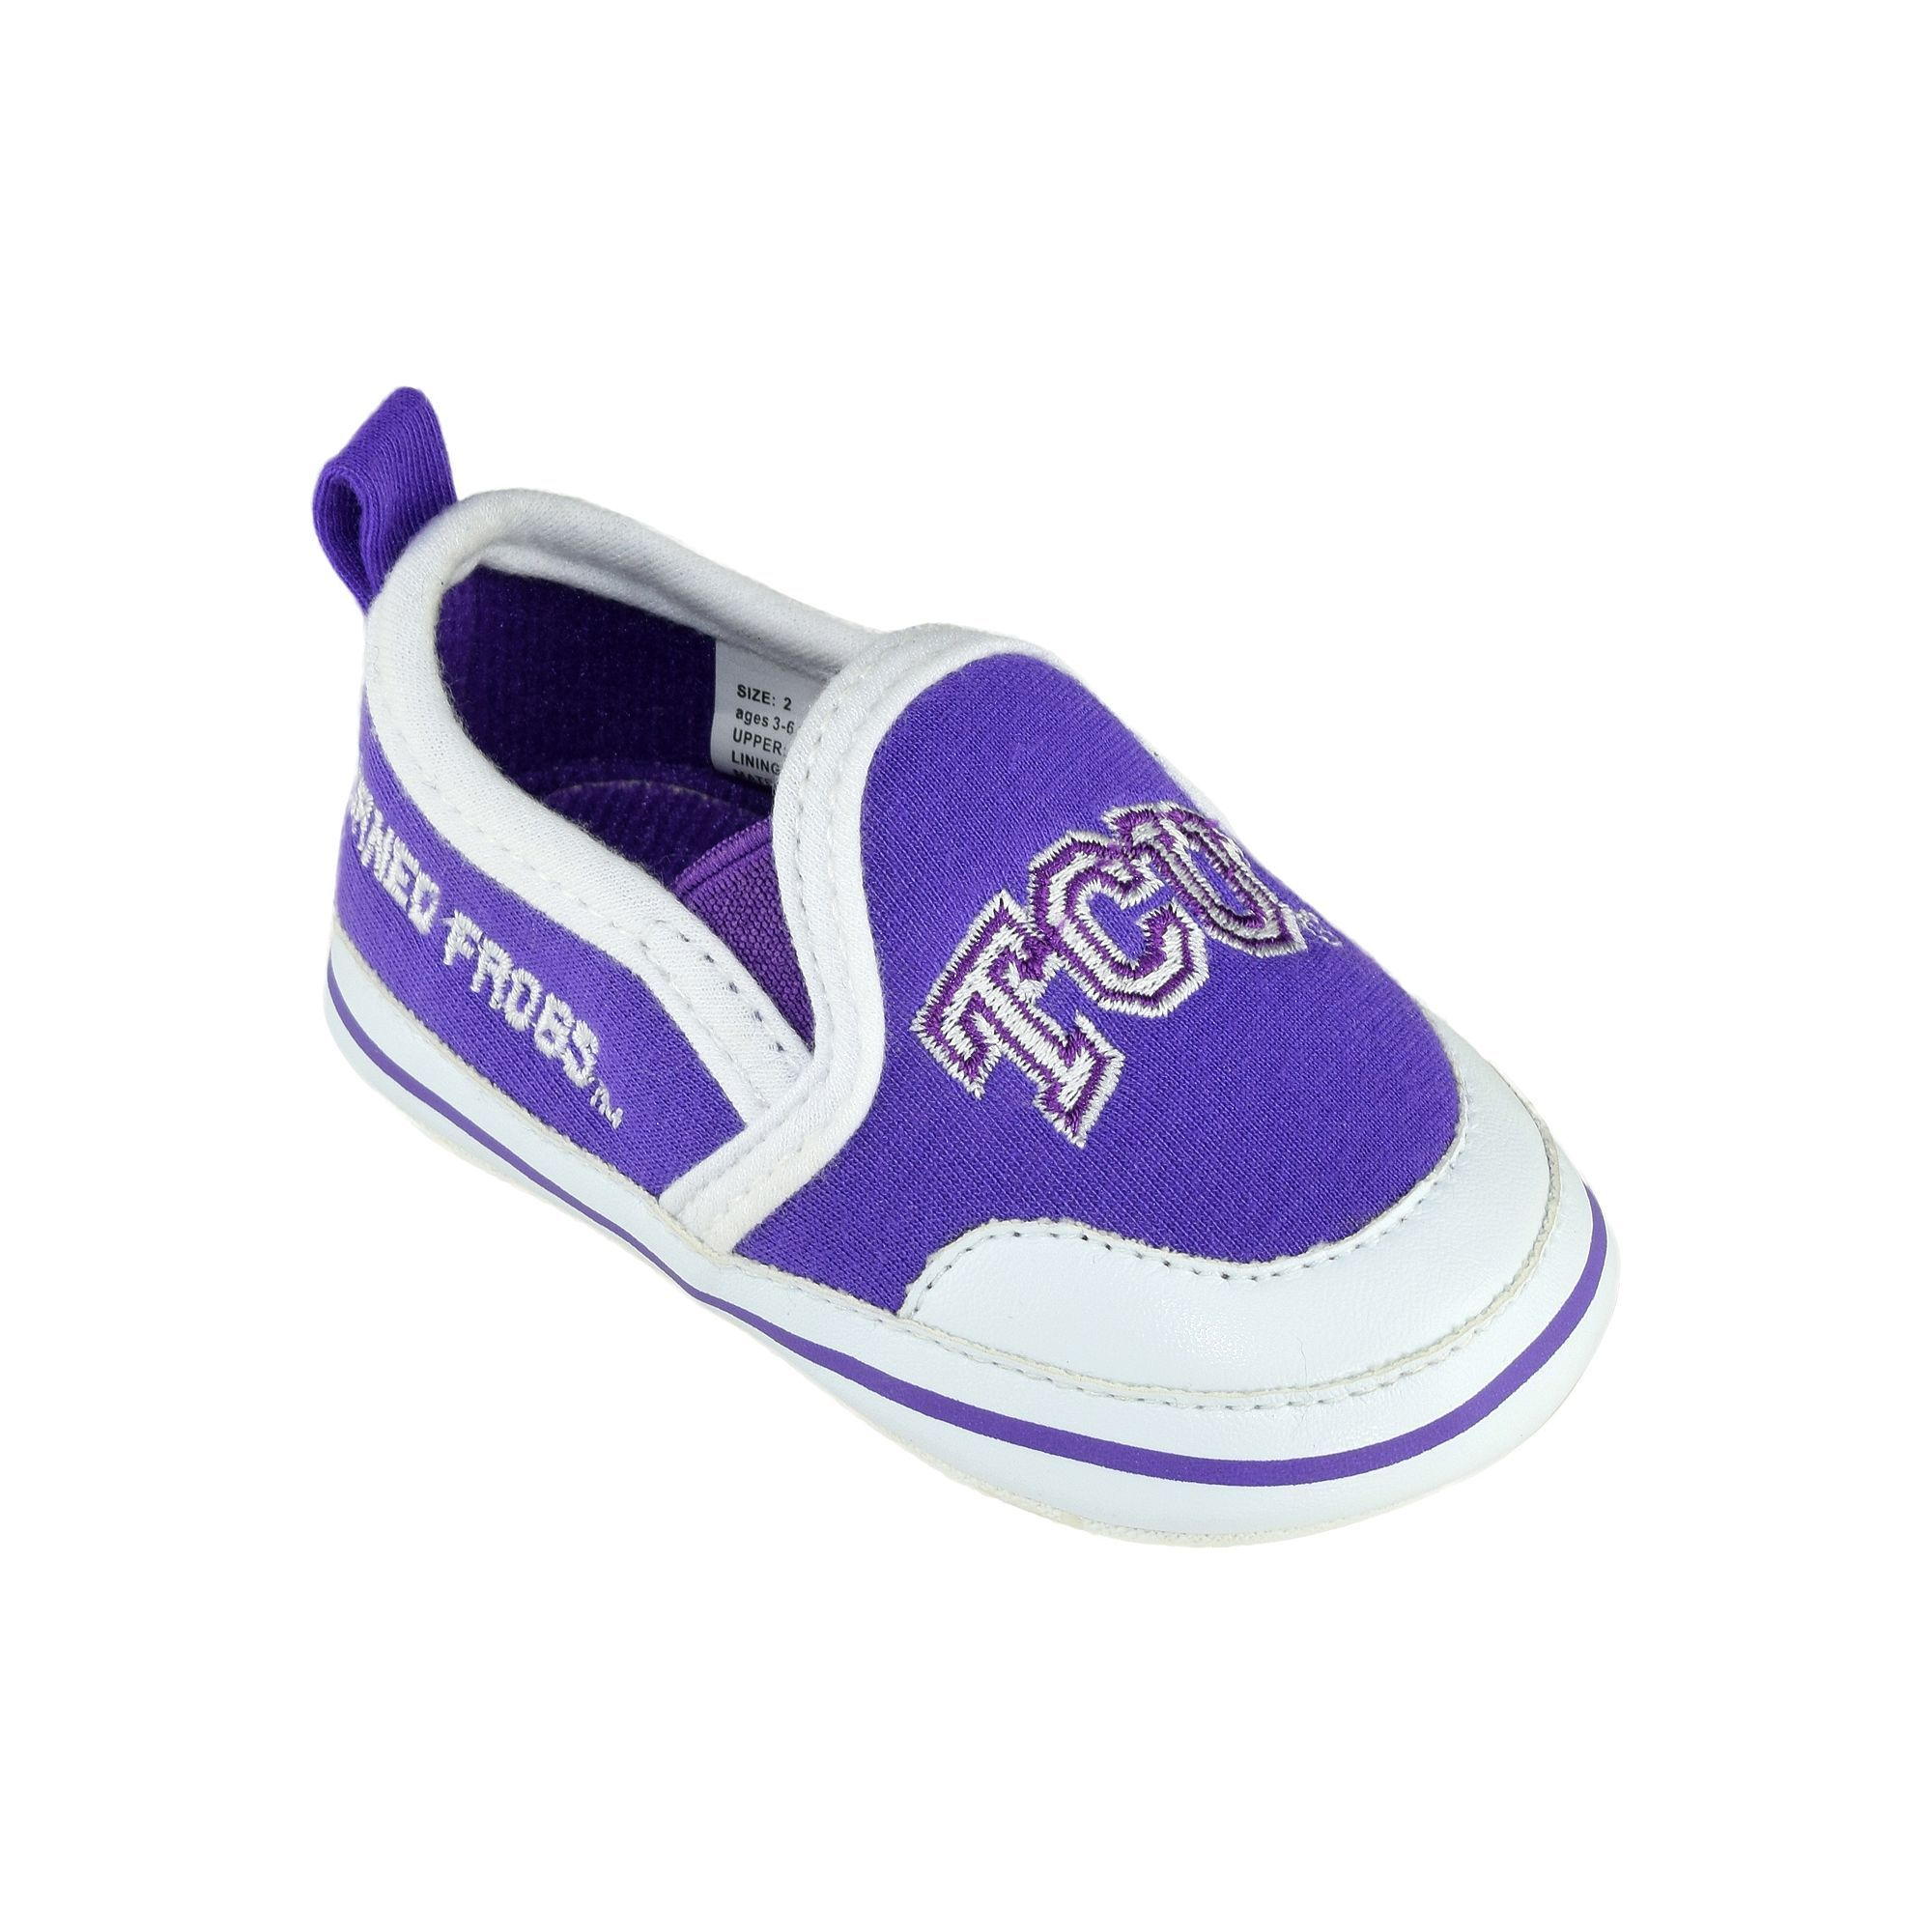 Kohl s Baby TCU Horned Frogs Crib Shoes